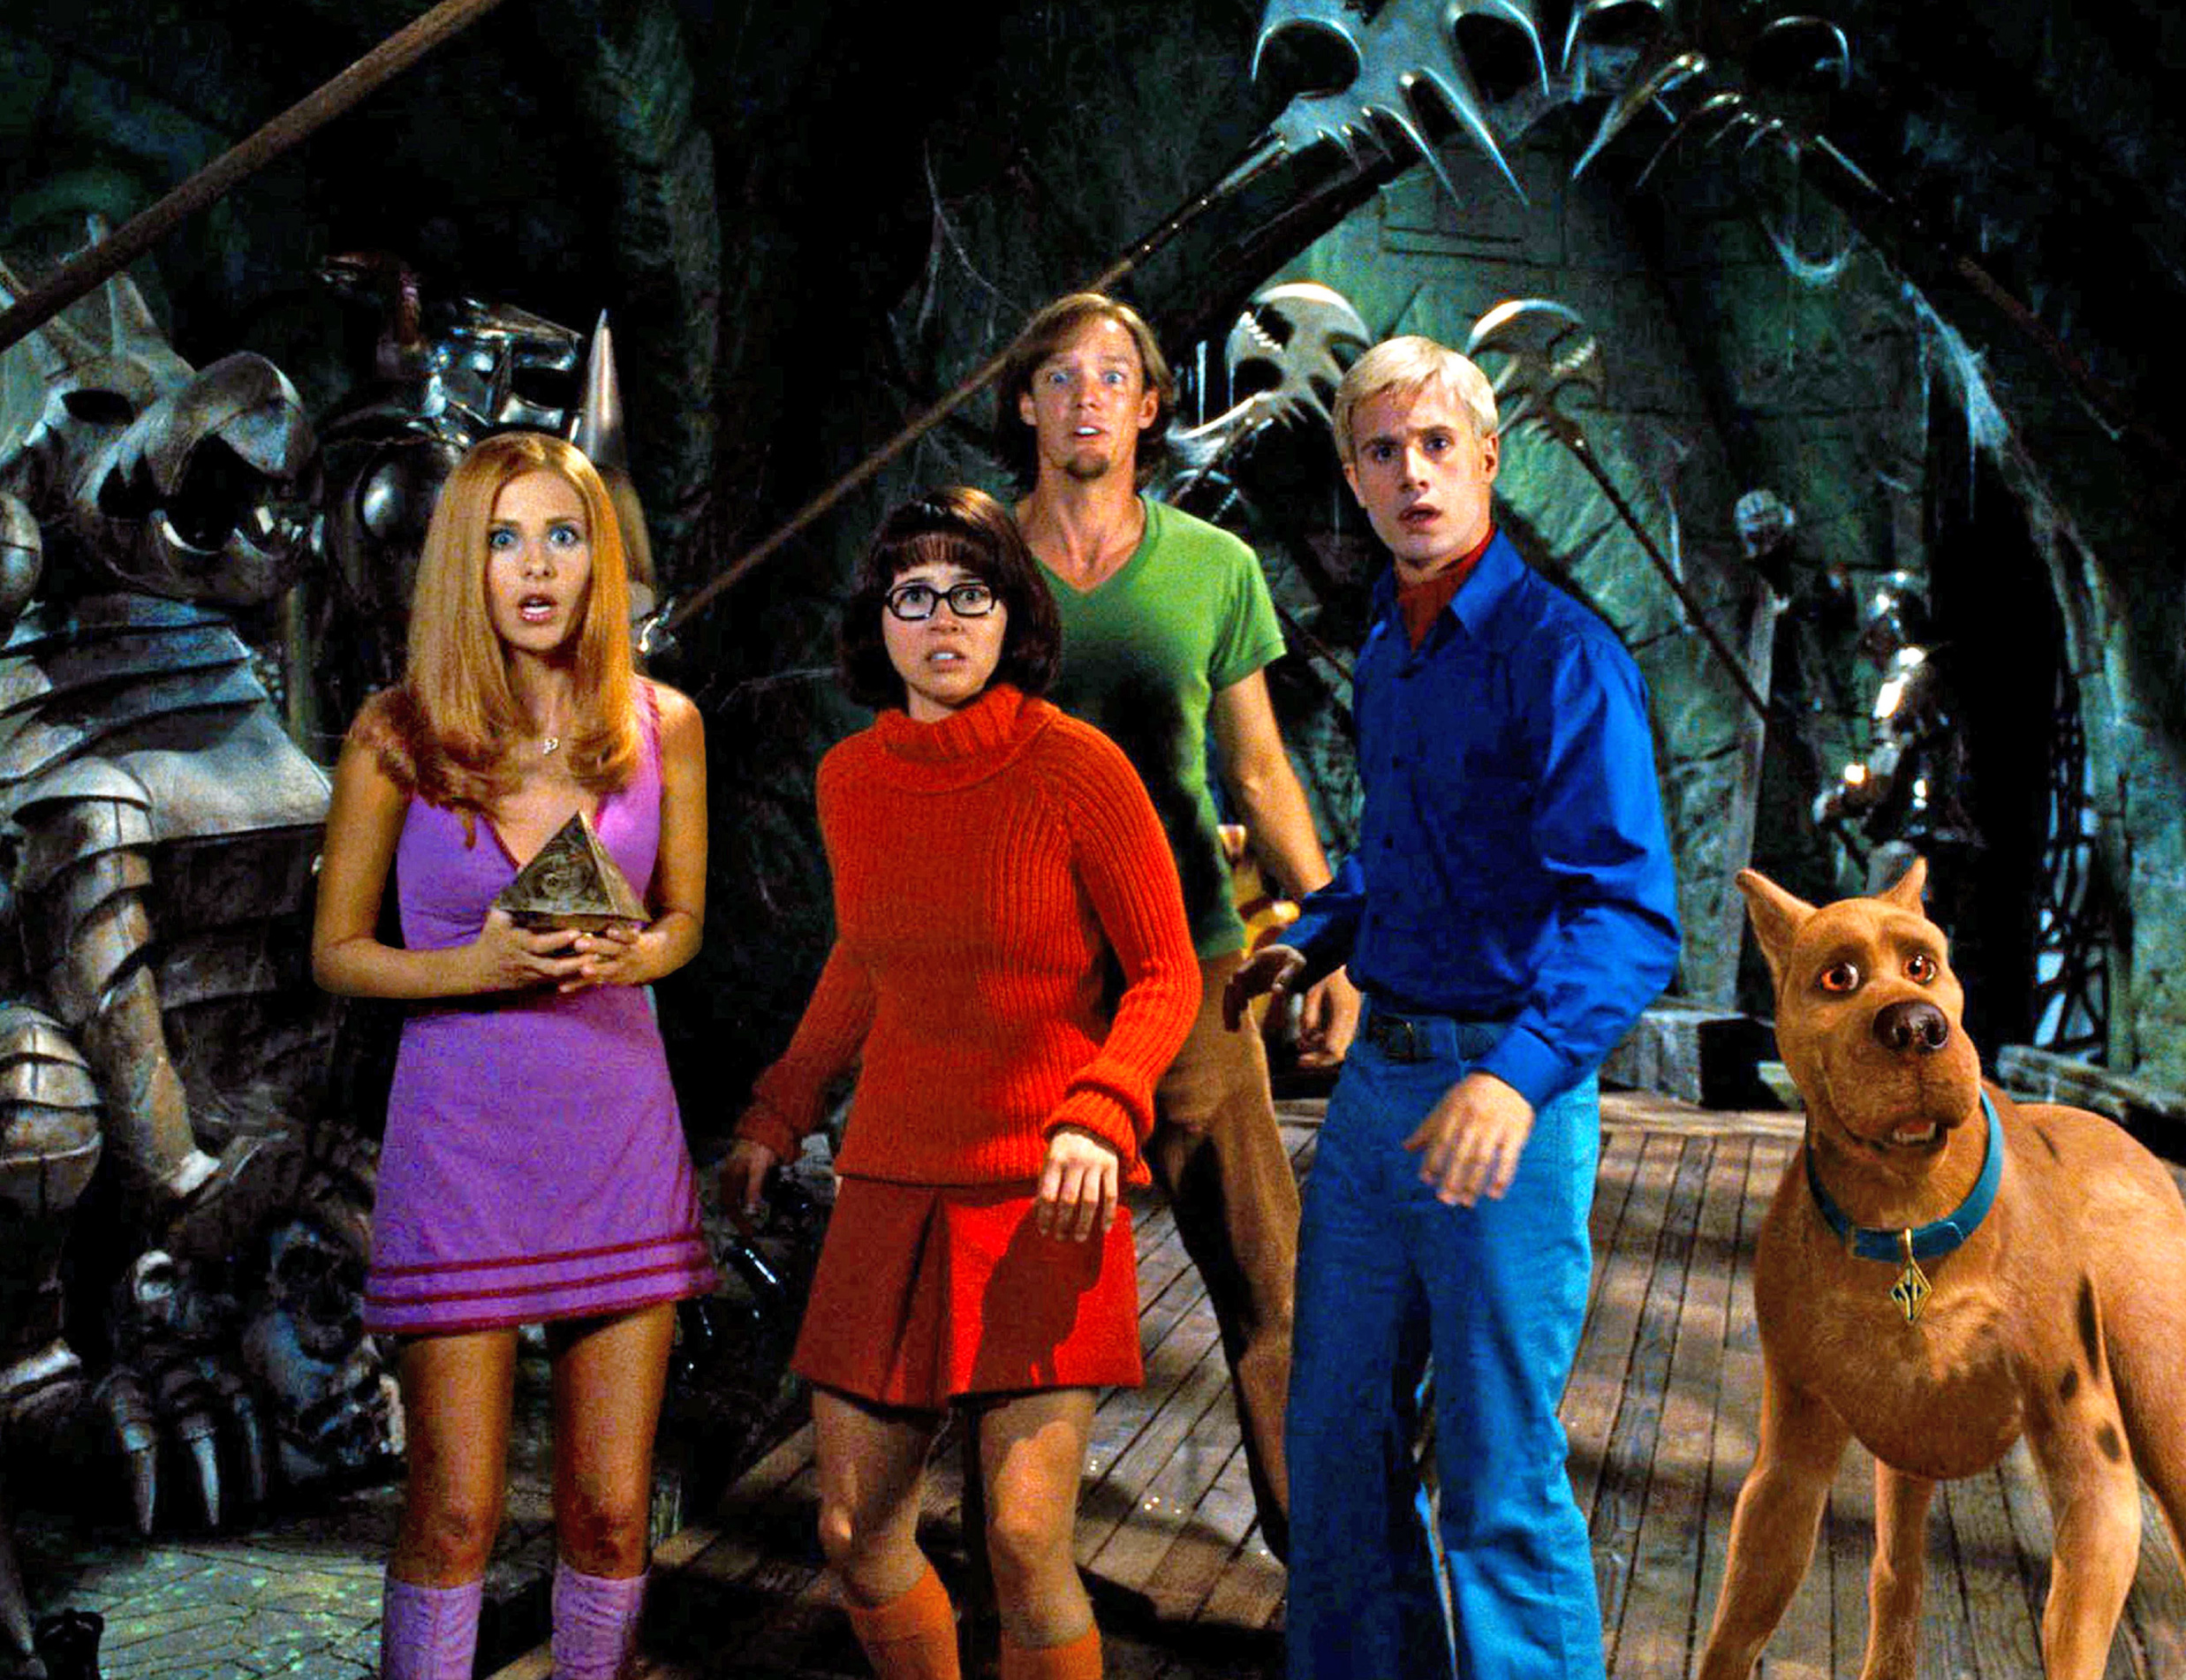 Scooby Doo Writer Reveals Studio Killed Fans Lesbian Velma Dreams